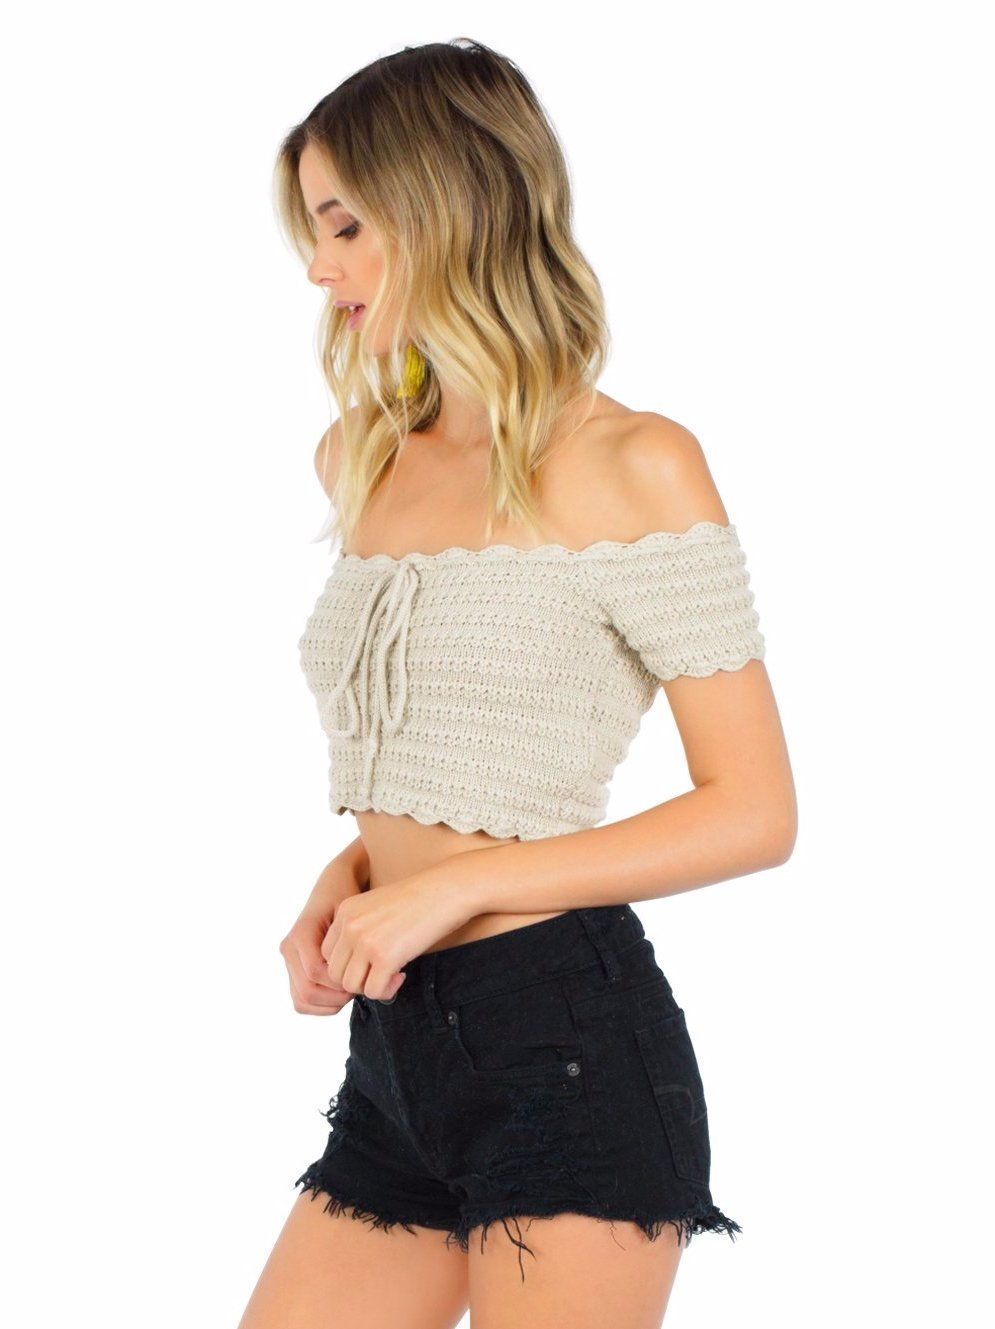 Women wearing a top rental from WYLDR called Break The Rules Crochet Crop Top